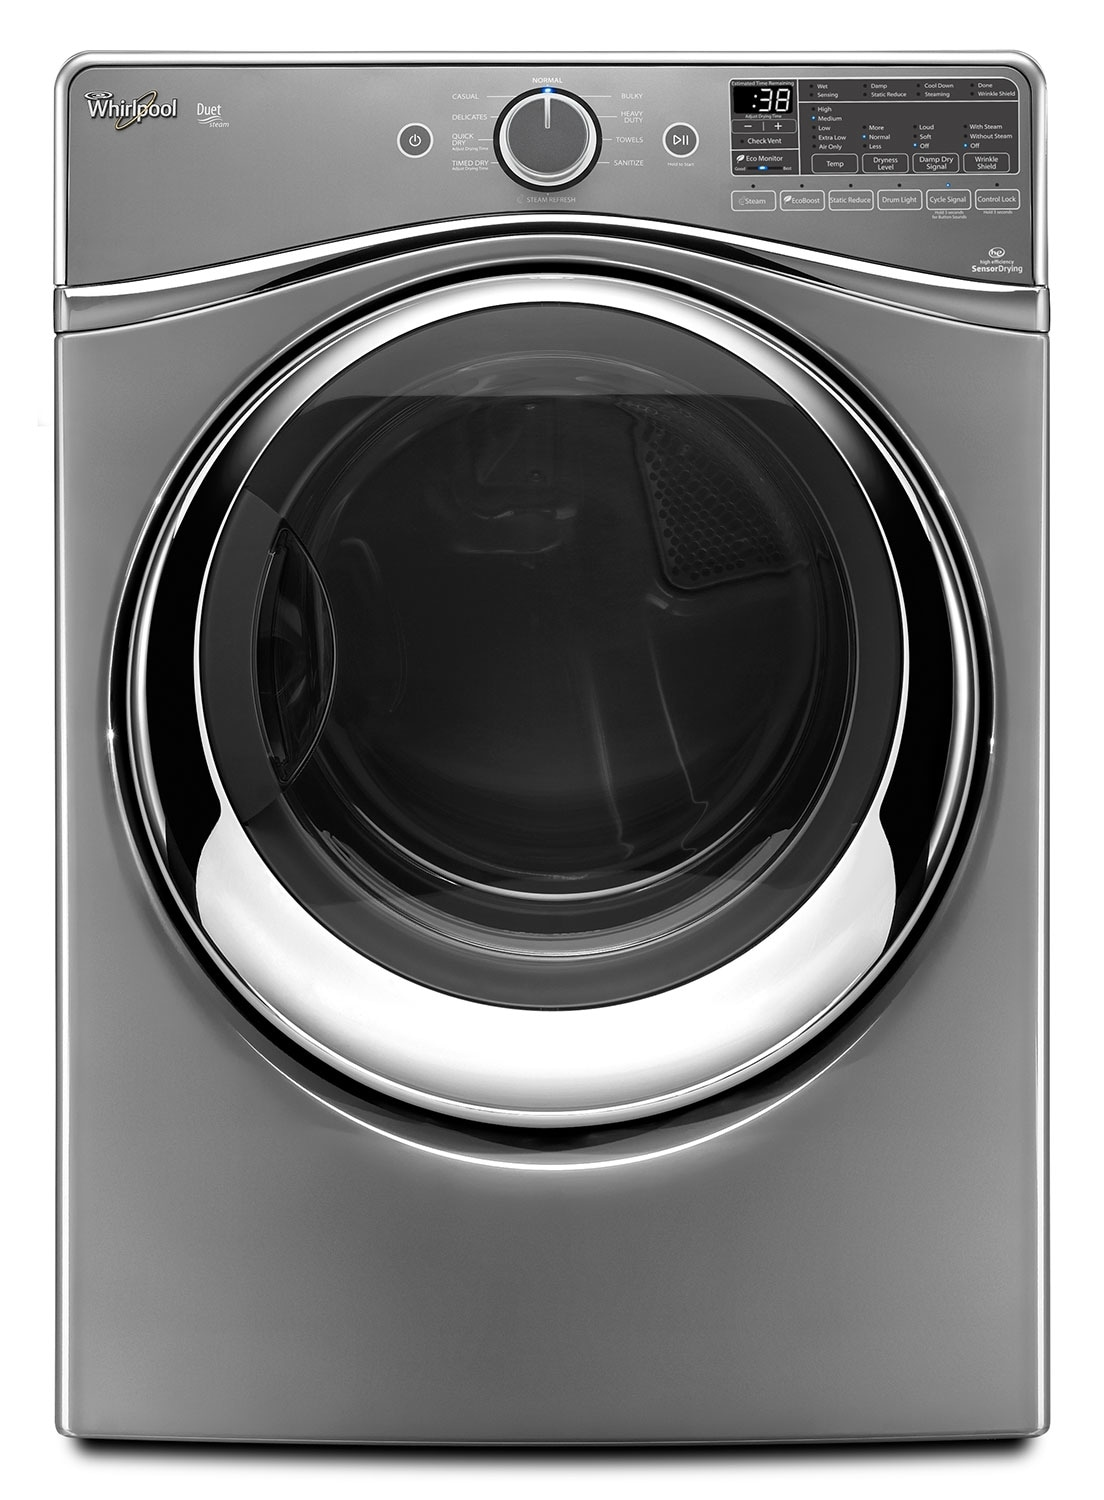 Washers and Dryers - Whirlpool Dryer (7.3 Cu. Ft.) YWED97HEDC